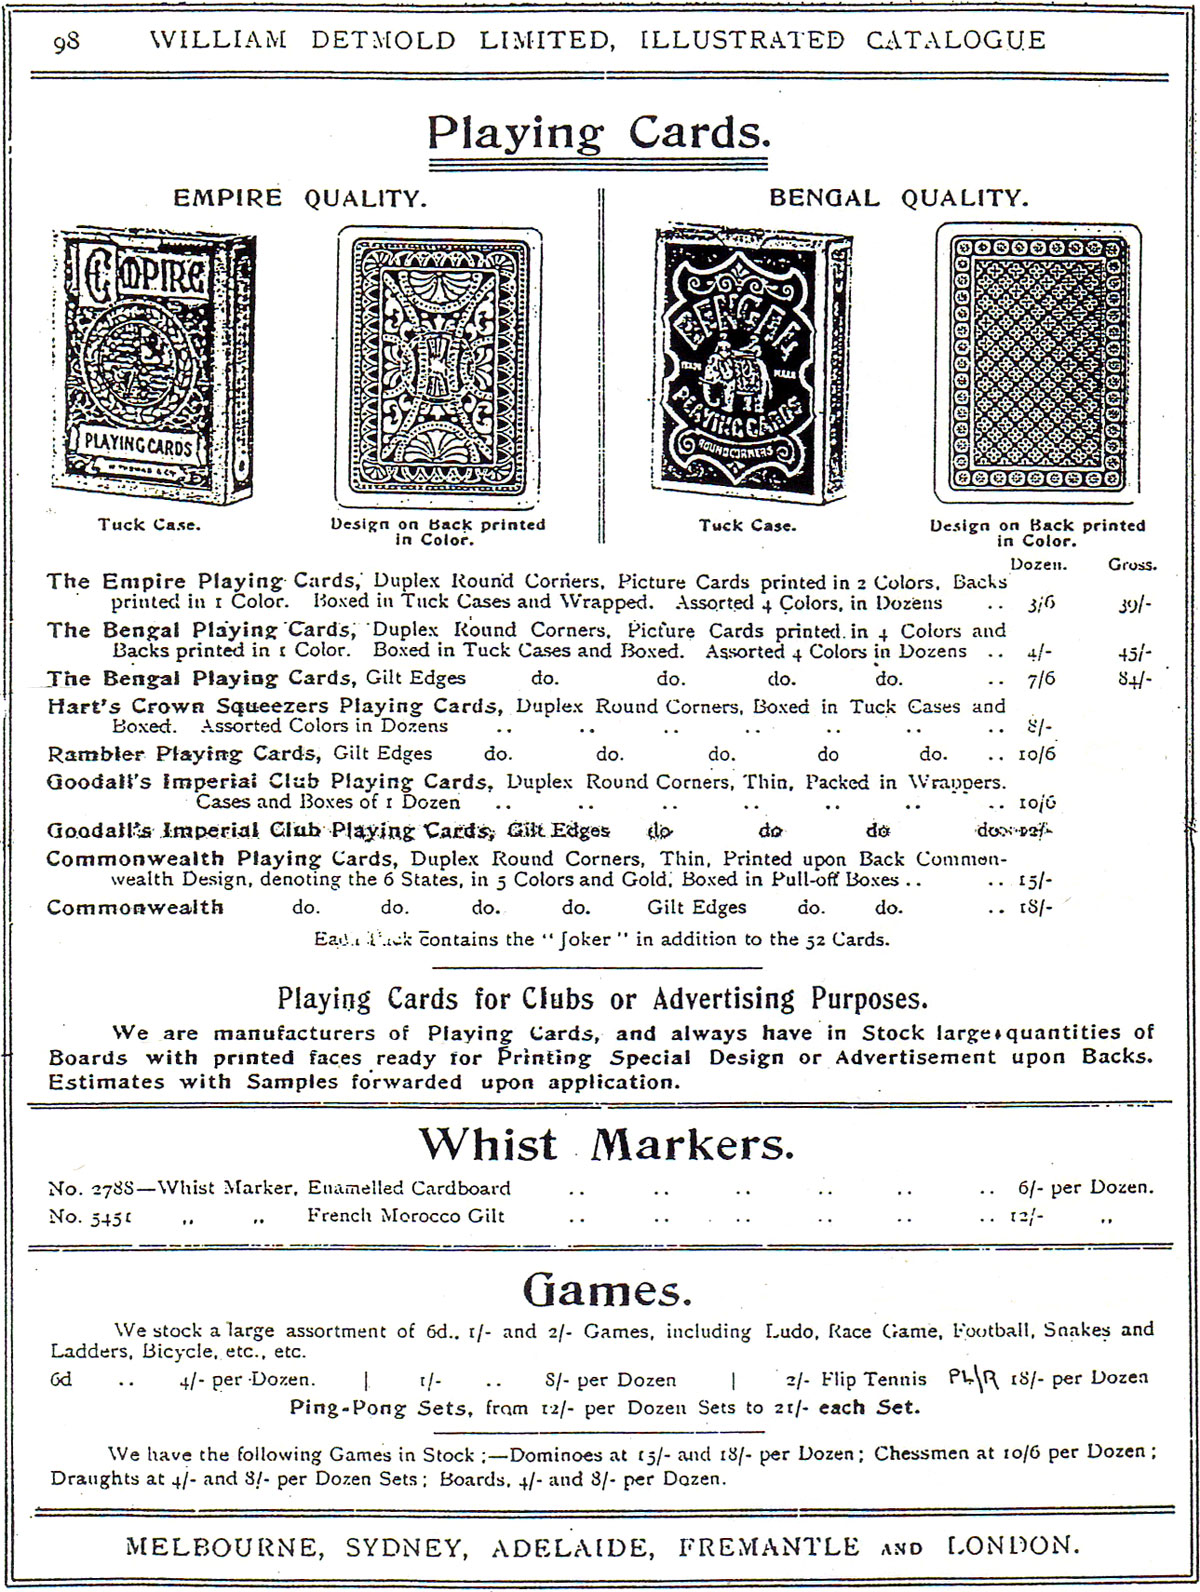 William Detmold Limited Illustrated Catalogue 1905